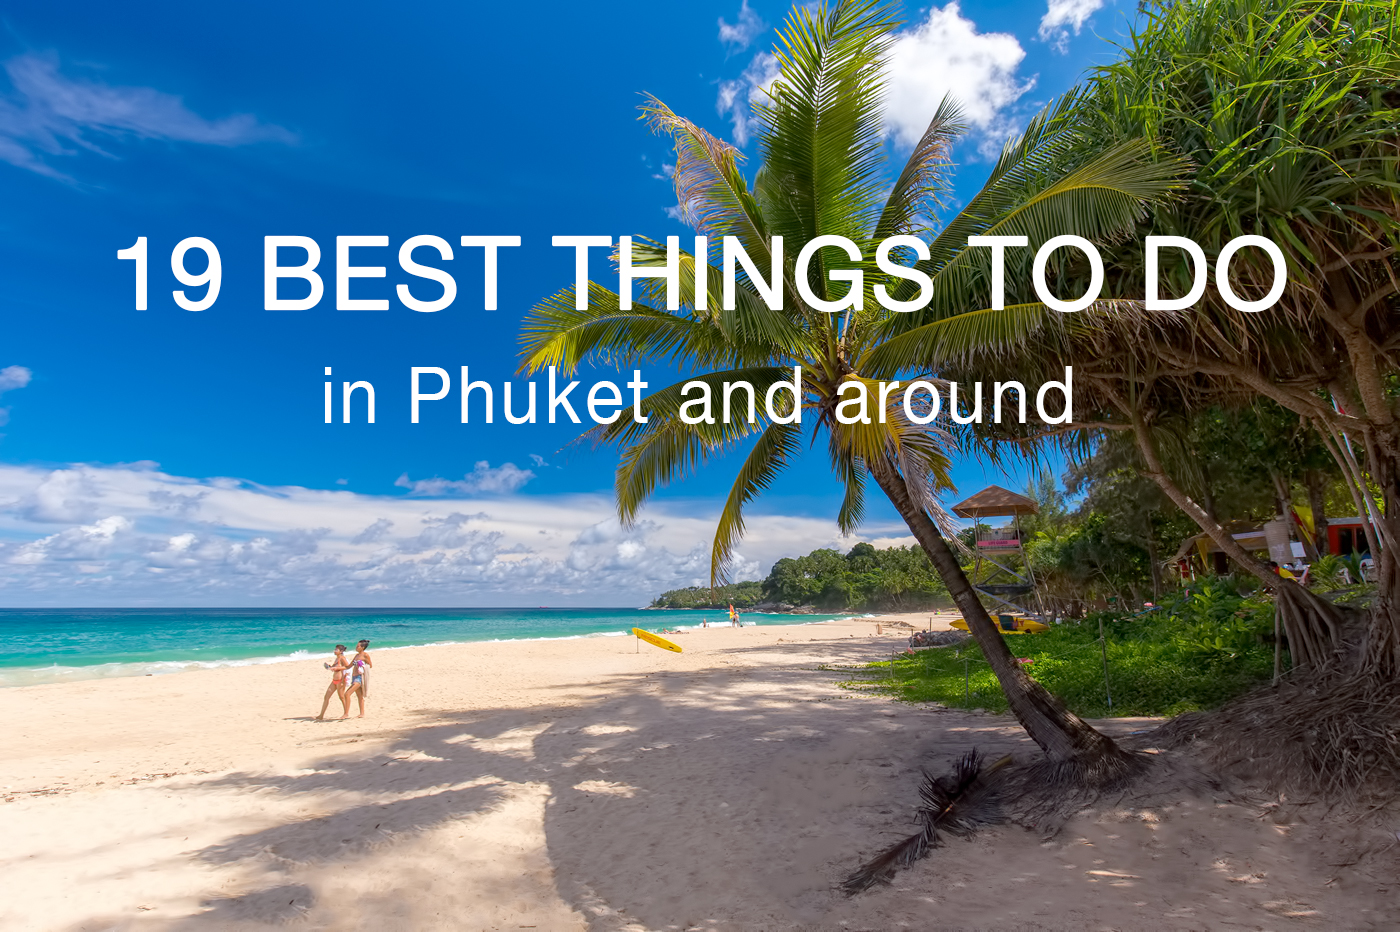 19 Best Things to Do in Phuket (Updated)